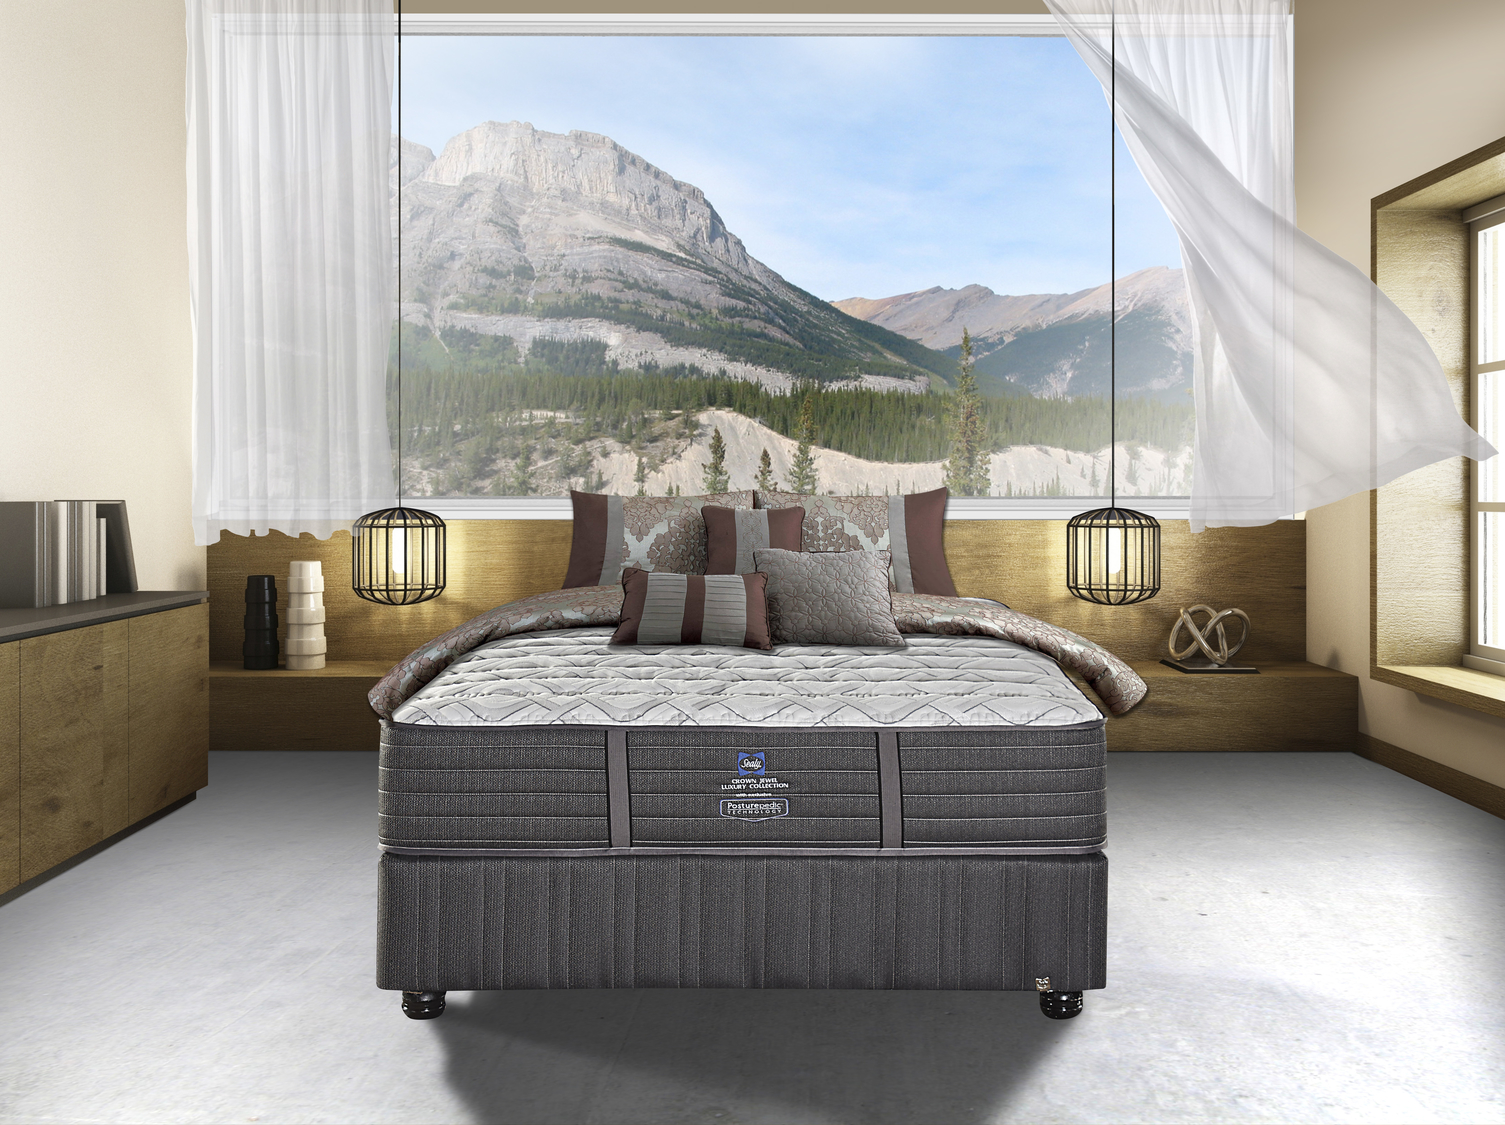 Luxury Mattresses & Beds